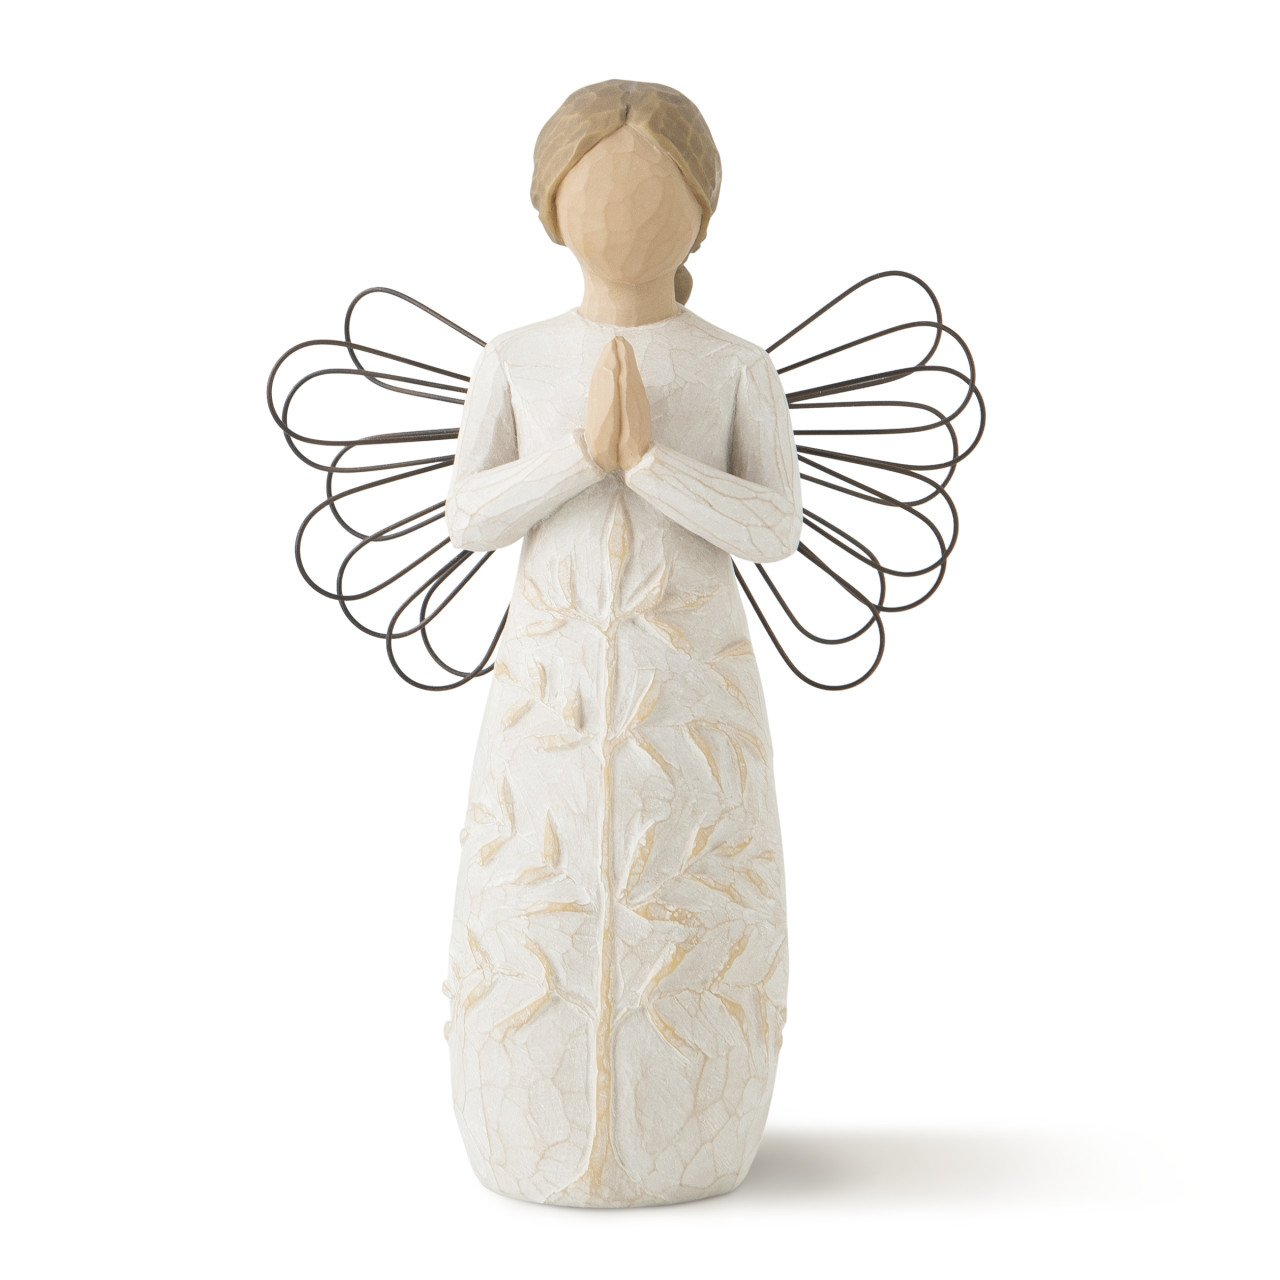 Willow Tree hand-painted sculpted angel, a tree, a prayer